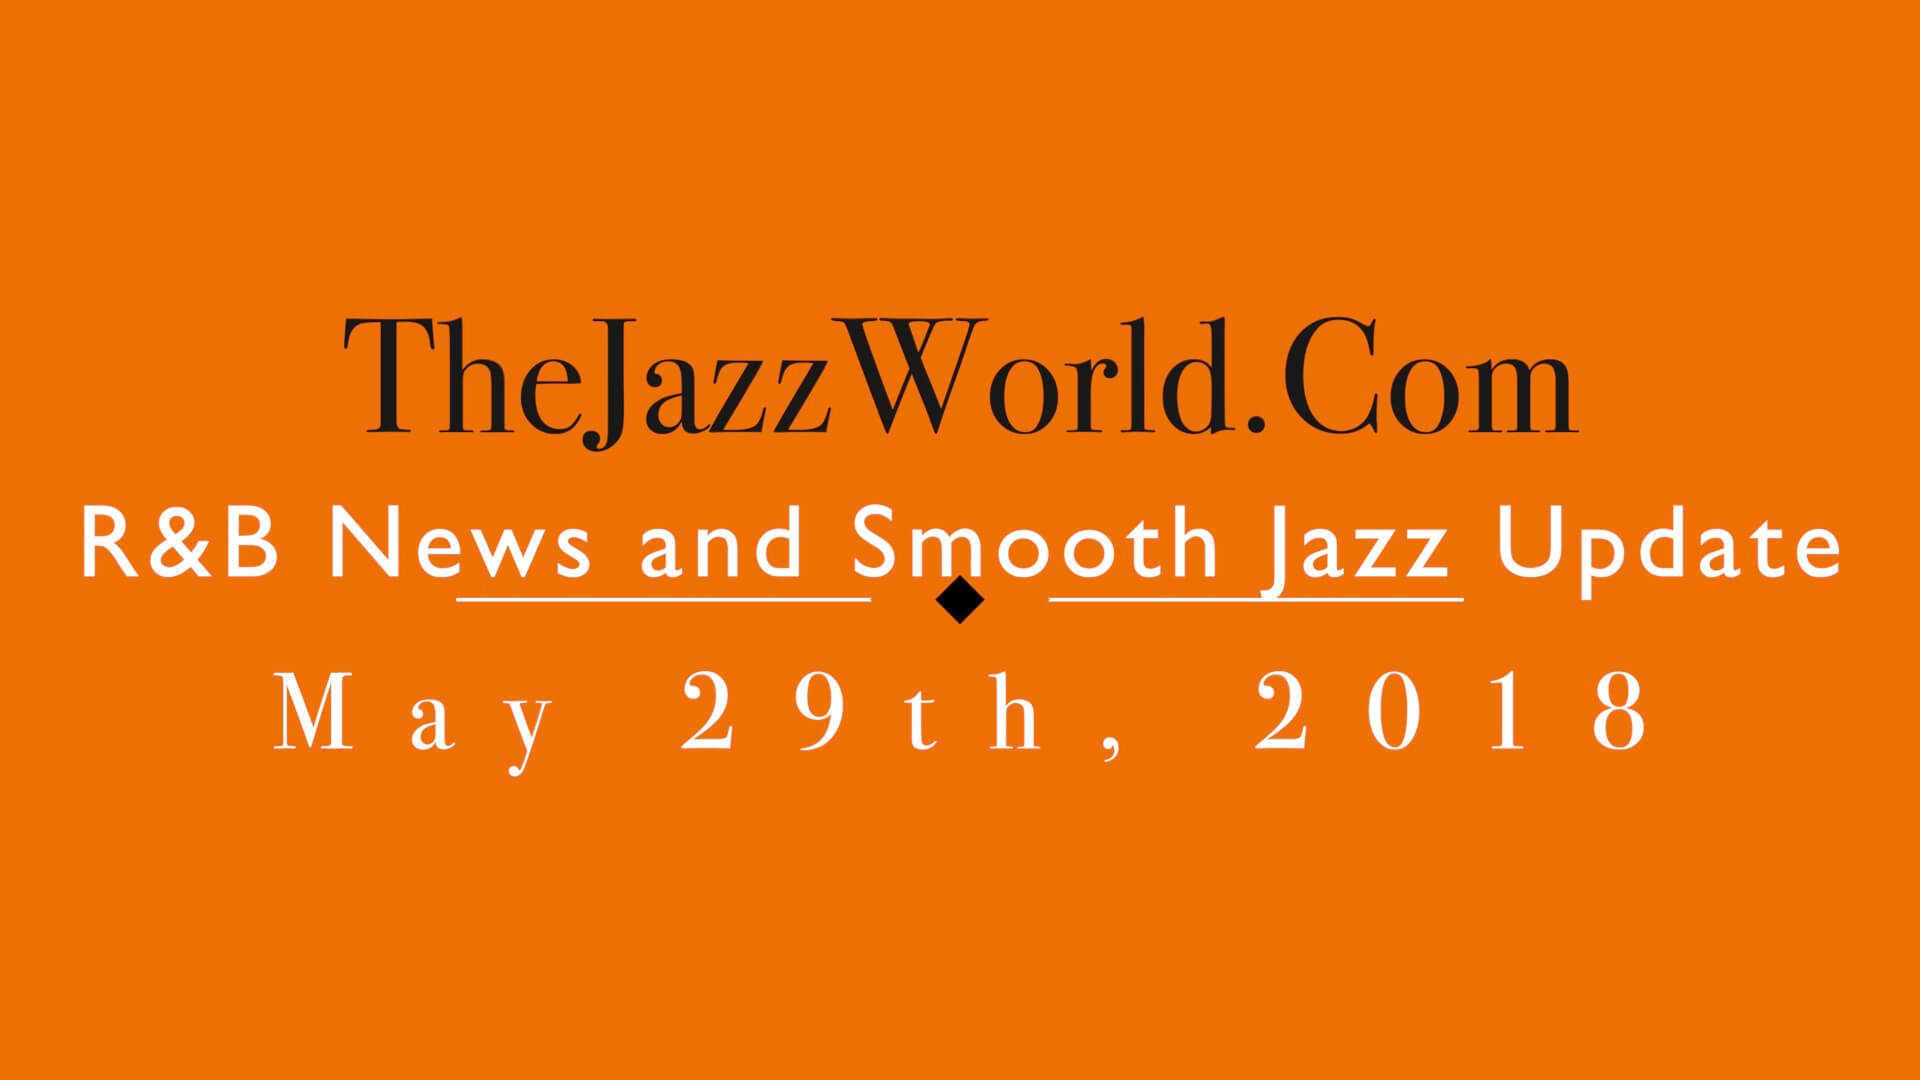 Save changesLatest R&B News and Smooth Jazz Update May 29th